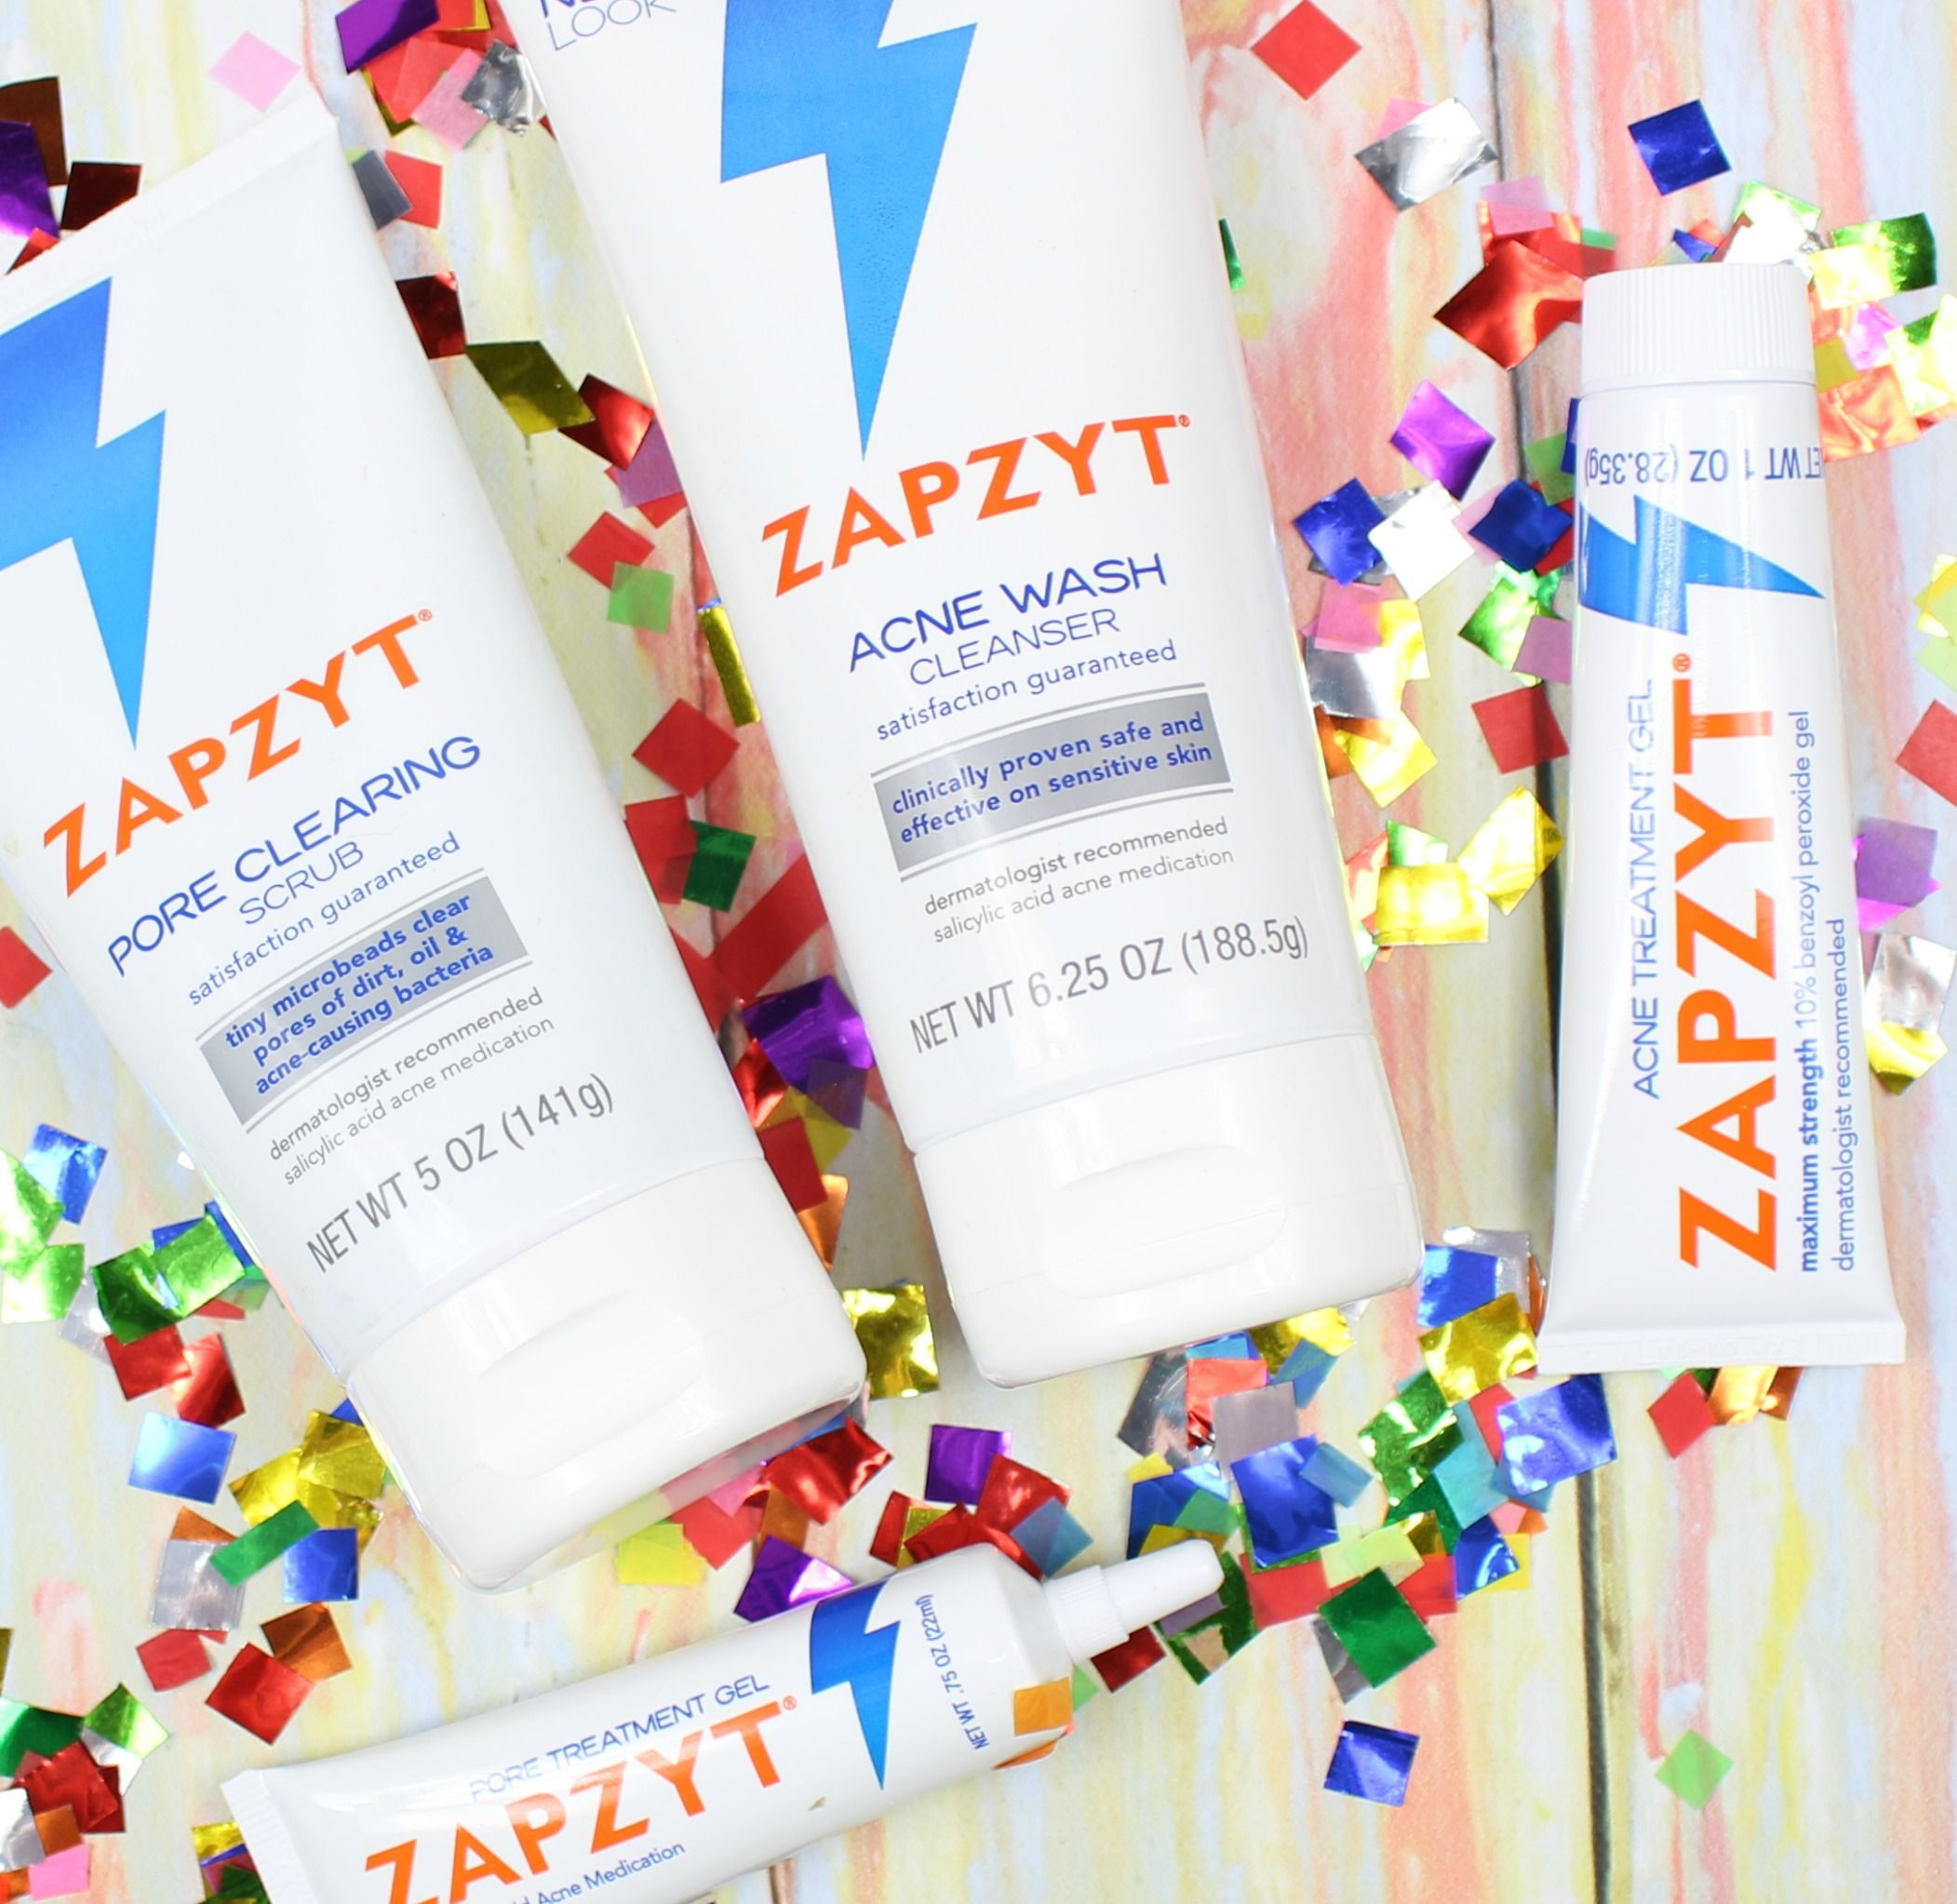 Pin By Jessica Scull On Zapzyt Giveaway Sensitive Skin Cleanser